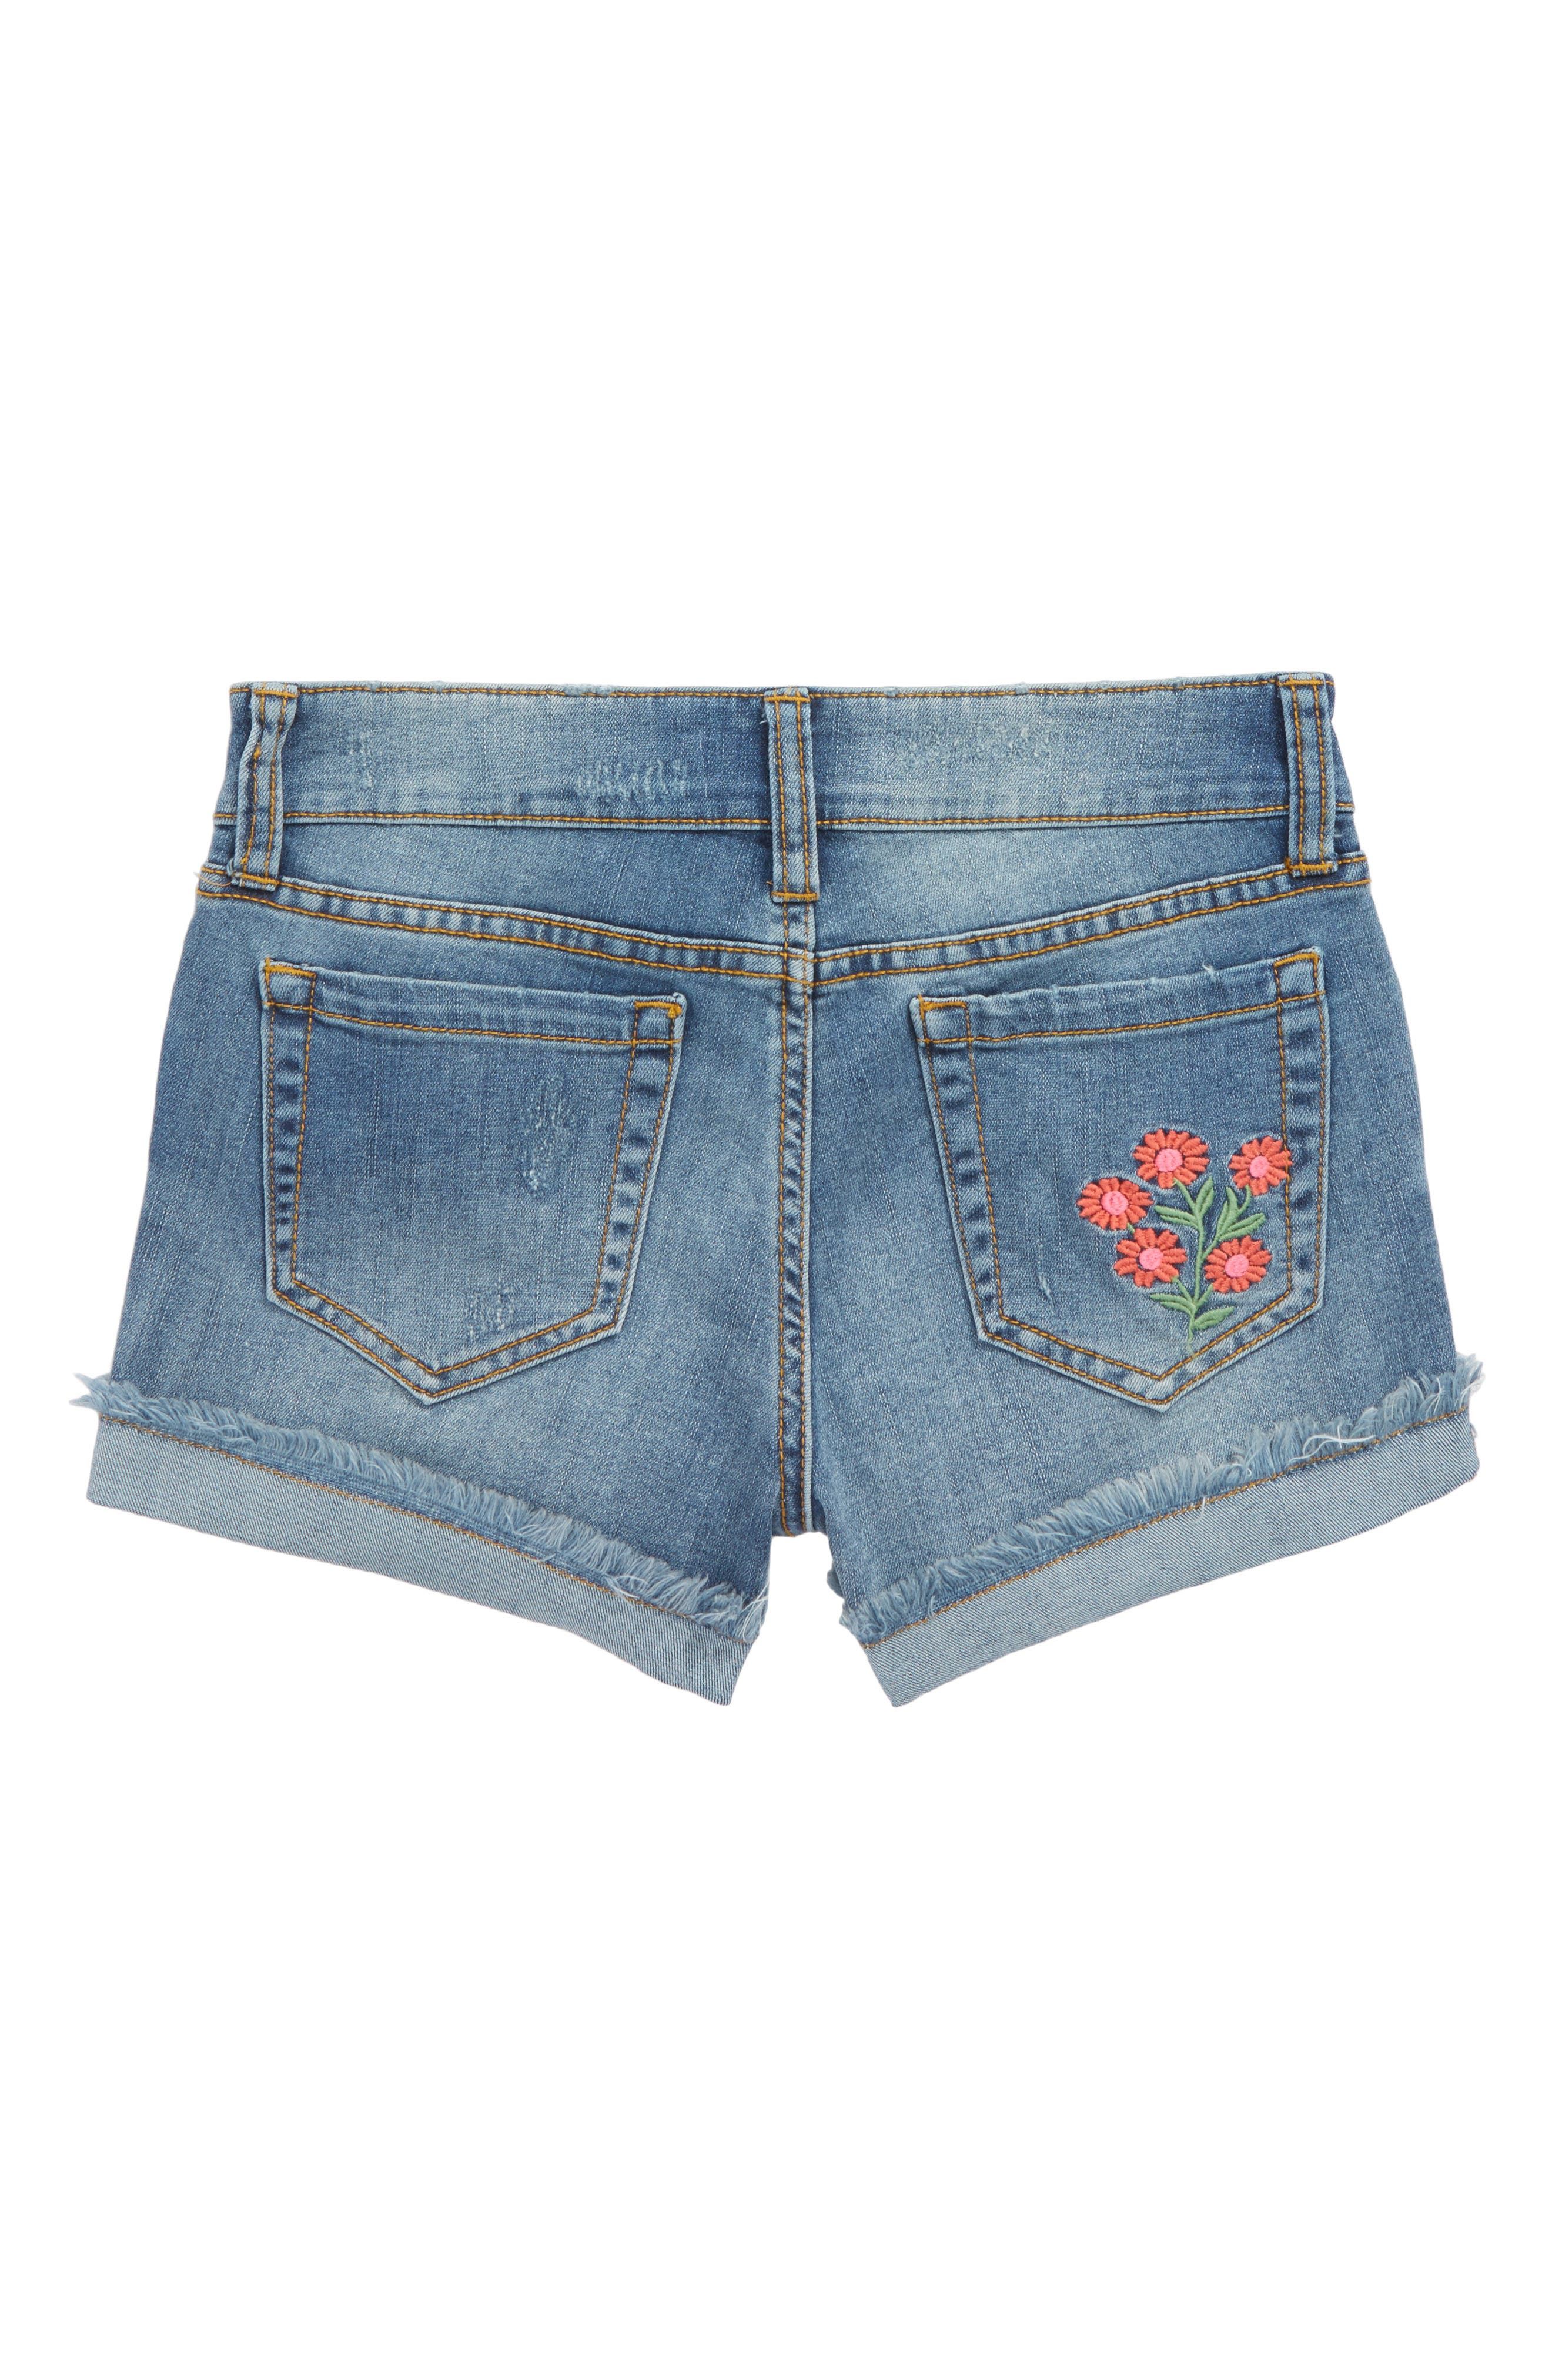 Flower Embroidered Denim Shorts,                             Alternate thumbnail 3, color,                             Lake Wash